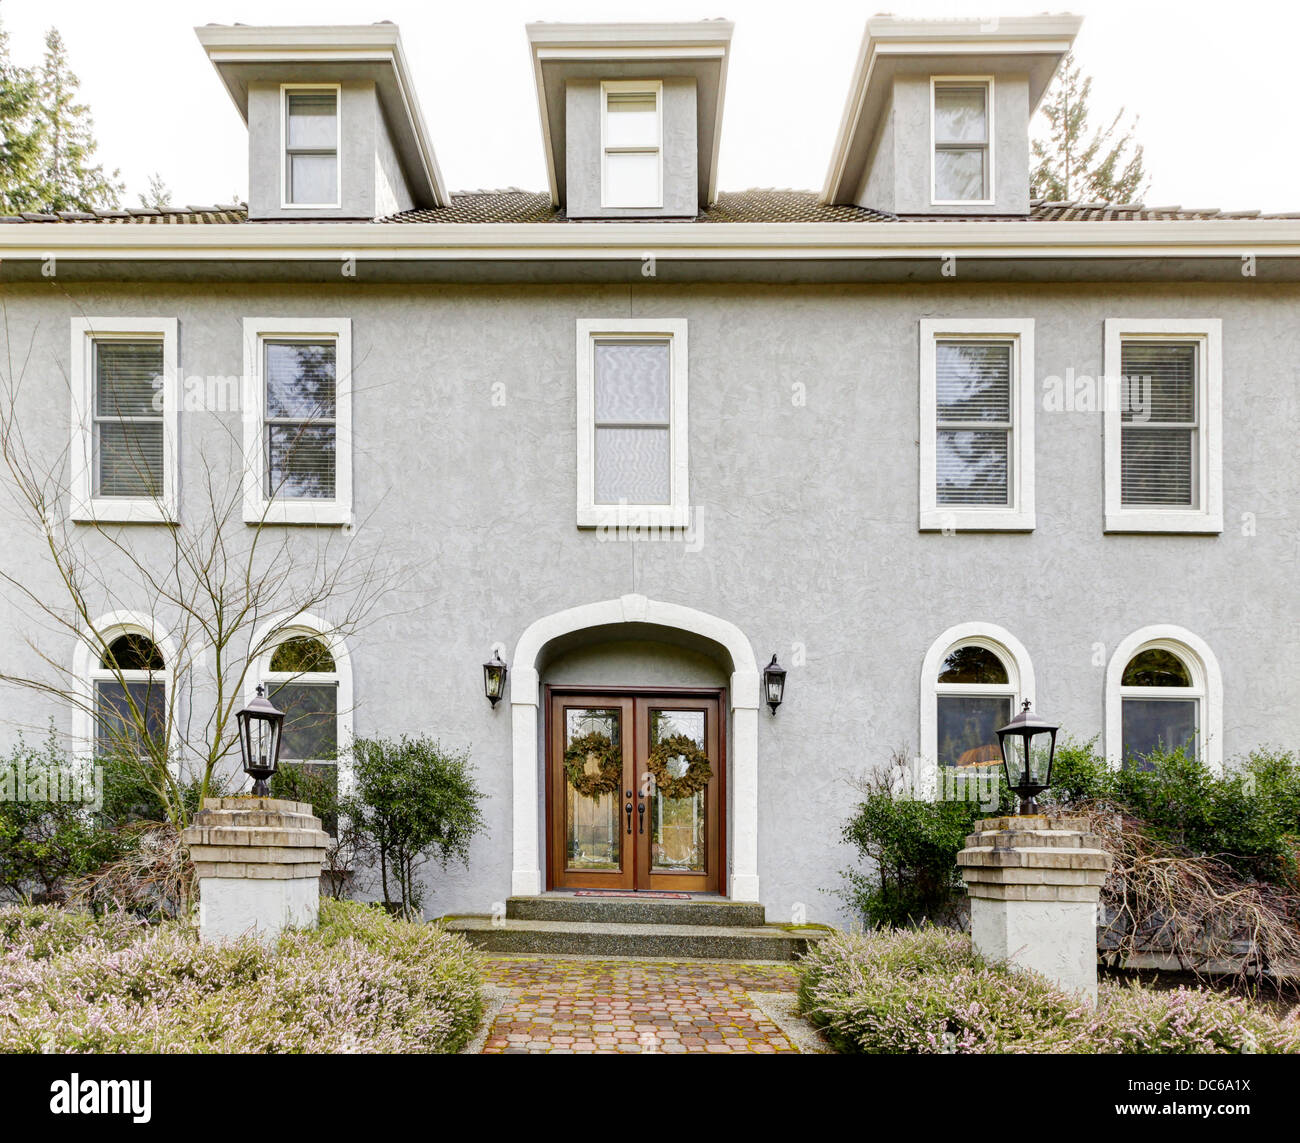 Home Exterior Of Large Grey Classic House With Many Narrow Windows